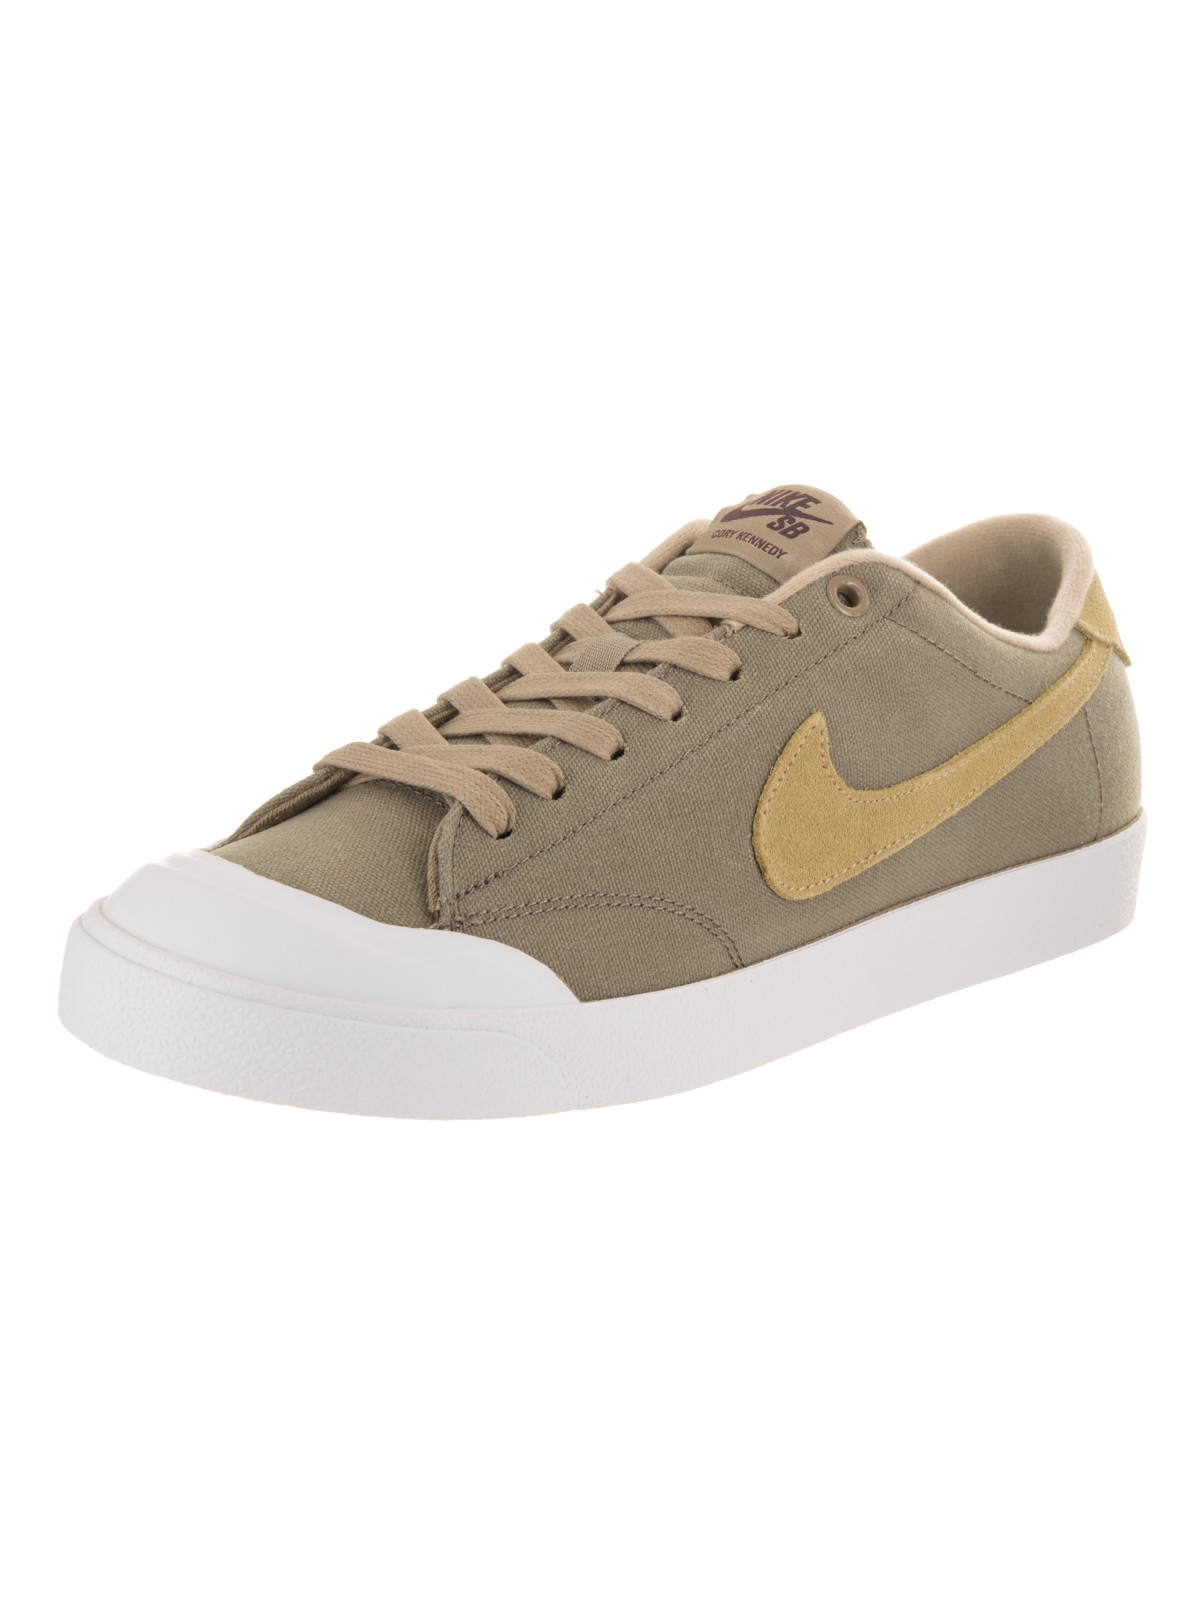 Nike Men's Zoom All Court Ck Skate Shoe